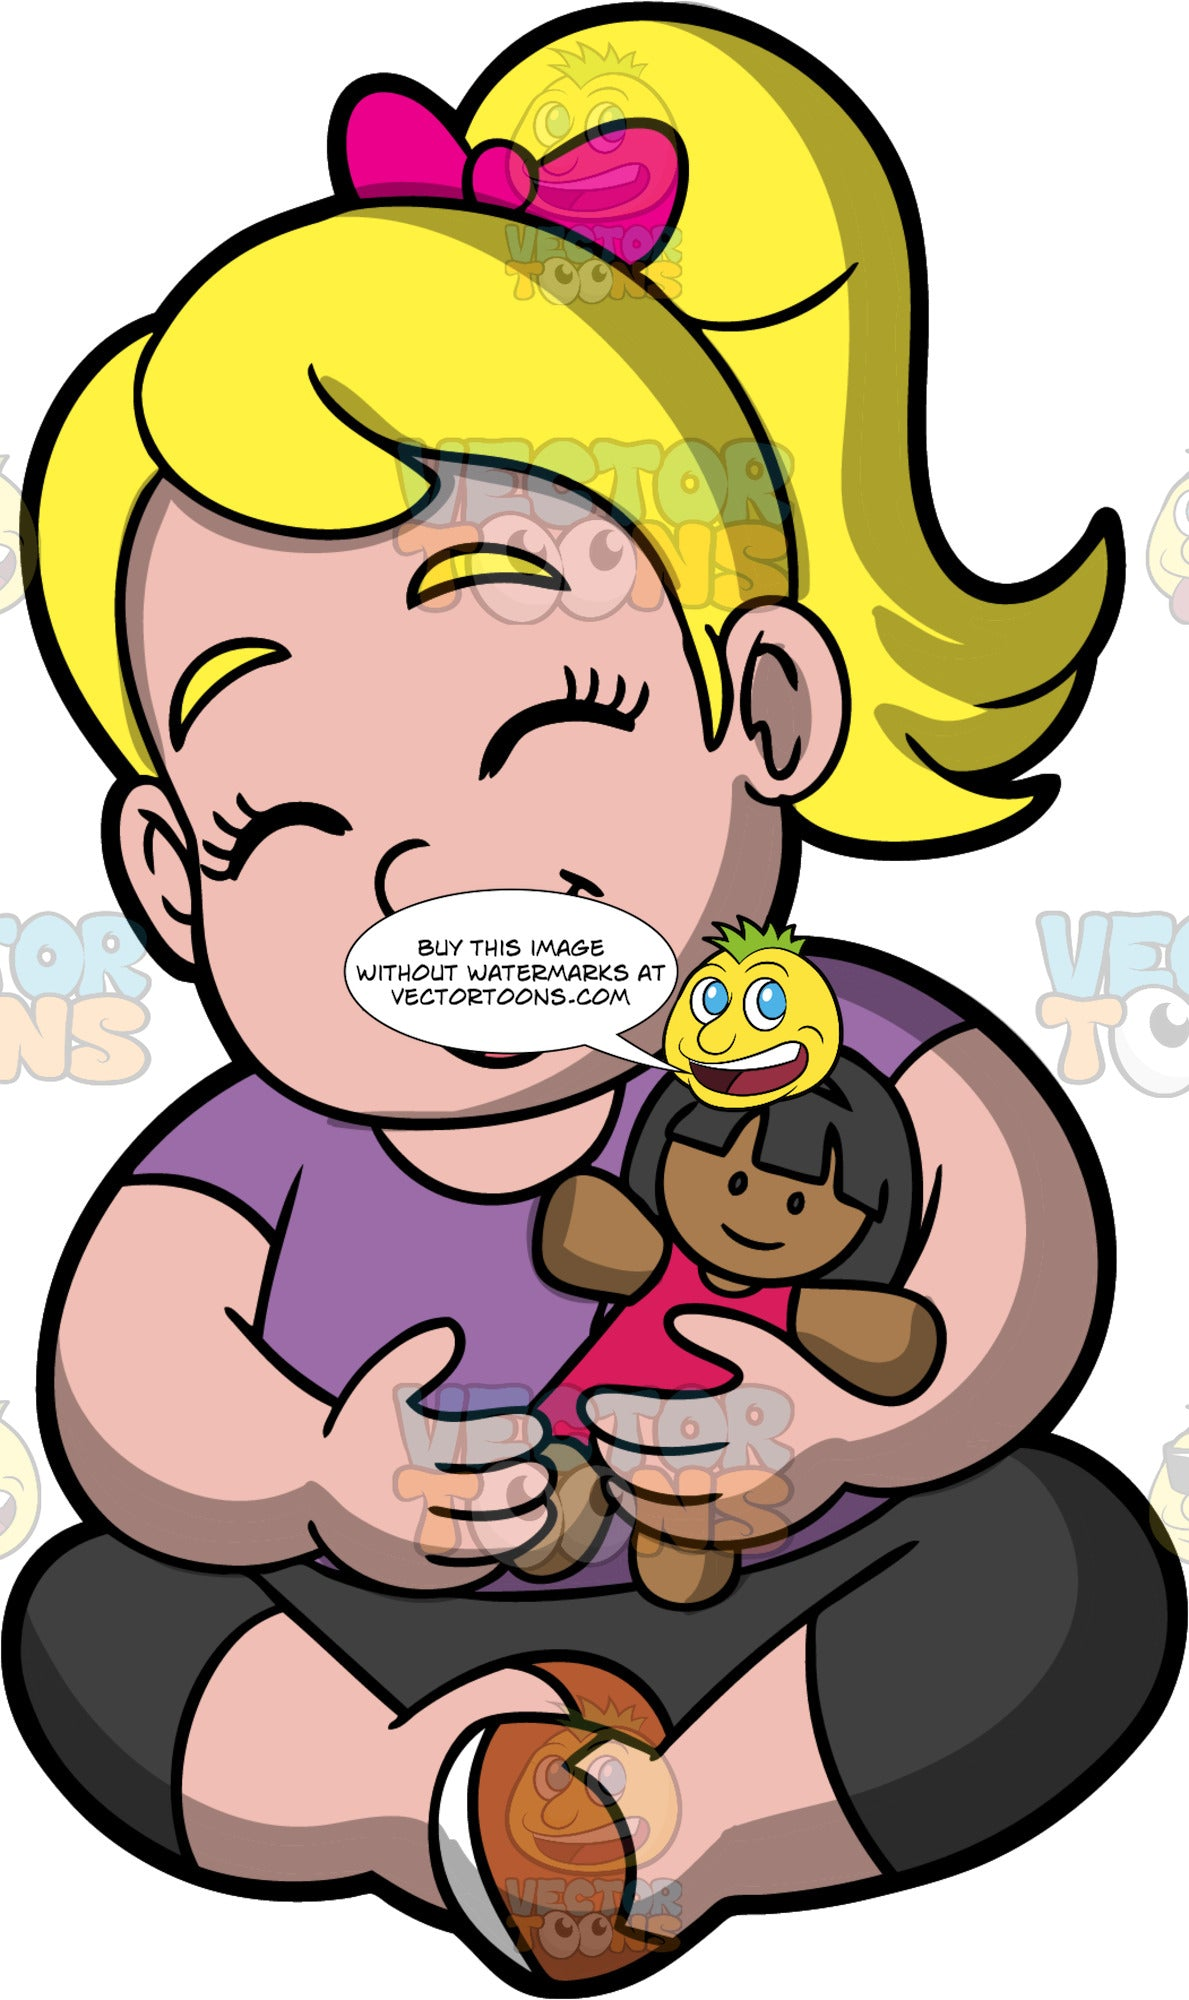 Young Pat Hugging Her Doll And Laughing. A chubby blonde girl wearing black pants, a purple shirt, and brown shoes, shitting on the floor holding her doll and laughing